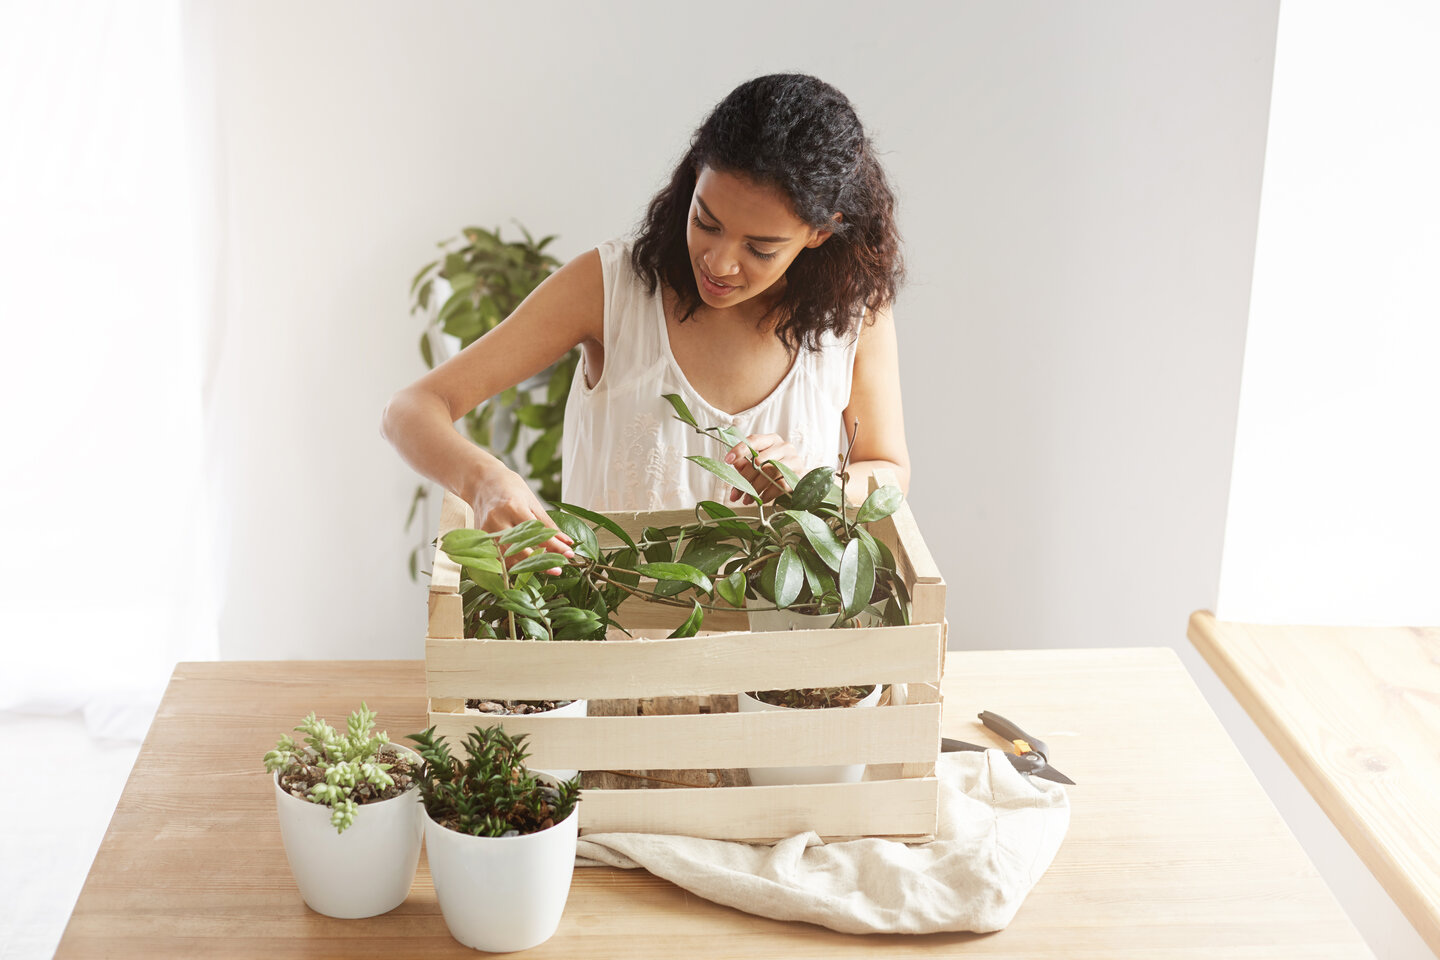 woman bought a lot of plants for her home